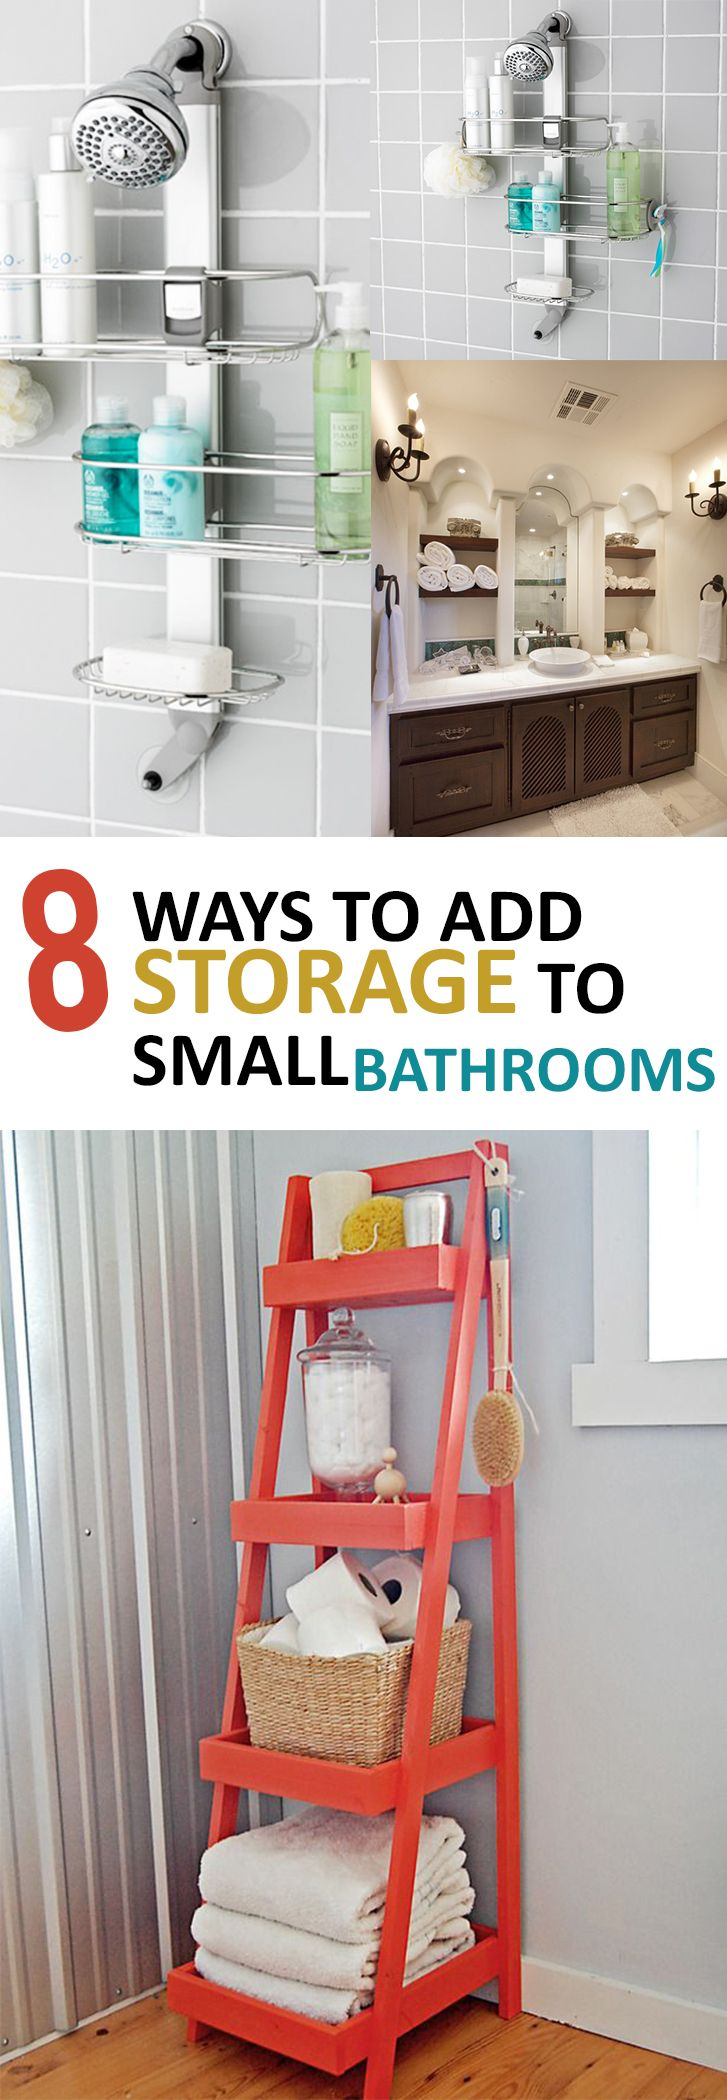 Uncategorized Add Organization Tips 10 great ways to add storage your bathroom bathroom